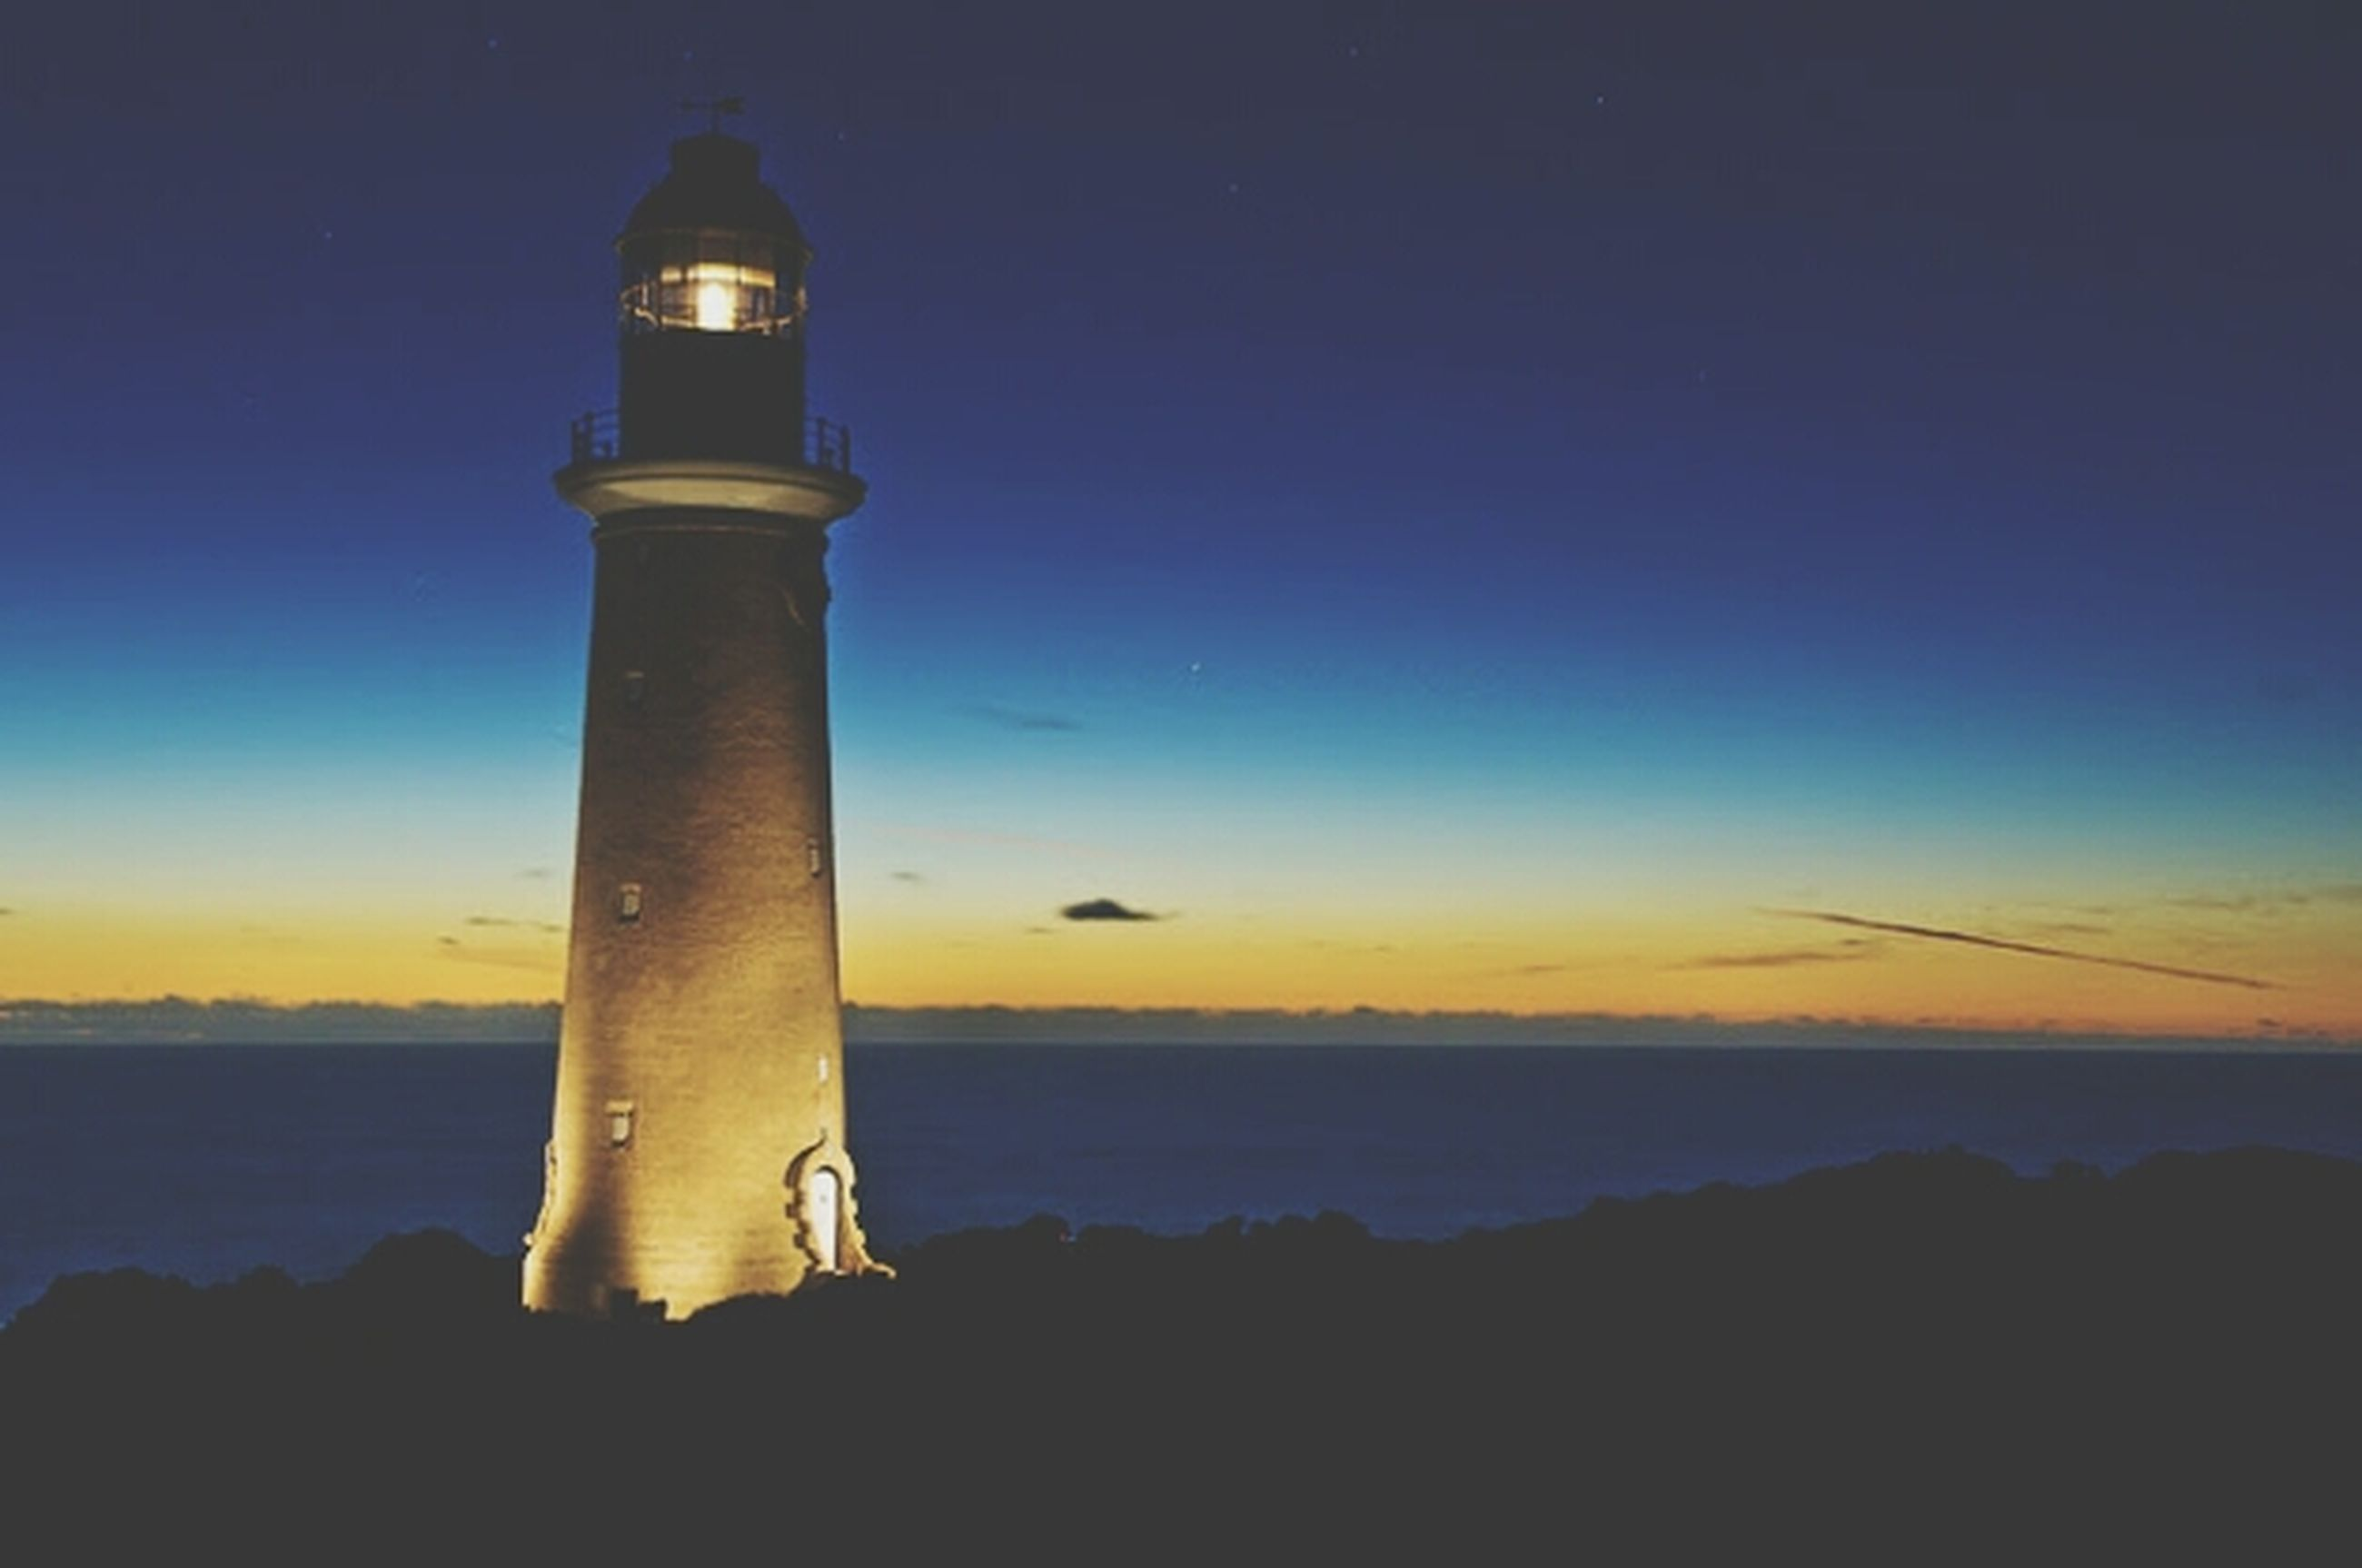 sea, lighthouse, water, horizon over water, sky, sunset, scenics, tranquil scene, tranquility, beauty in nature, silhouette, guidance, nature, protection, built structure, blue, idyllic, dusk, outdoors, copy space